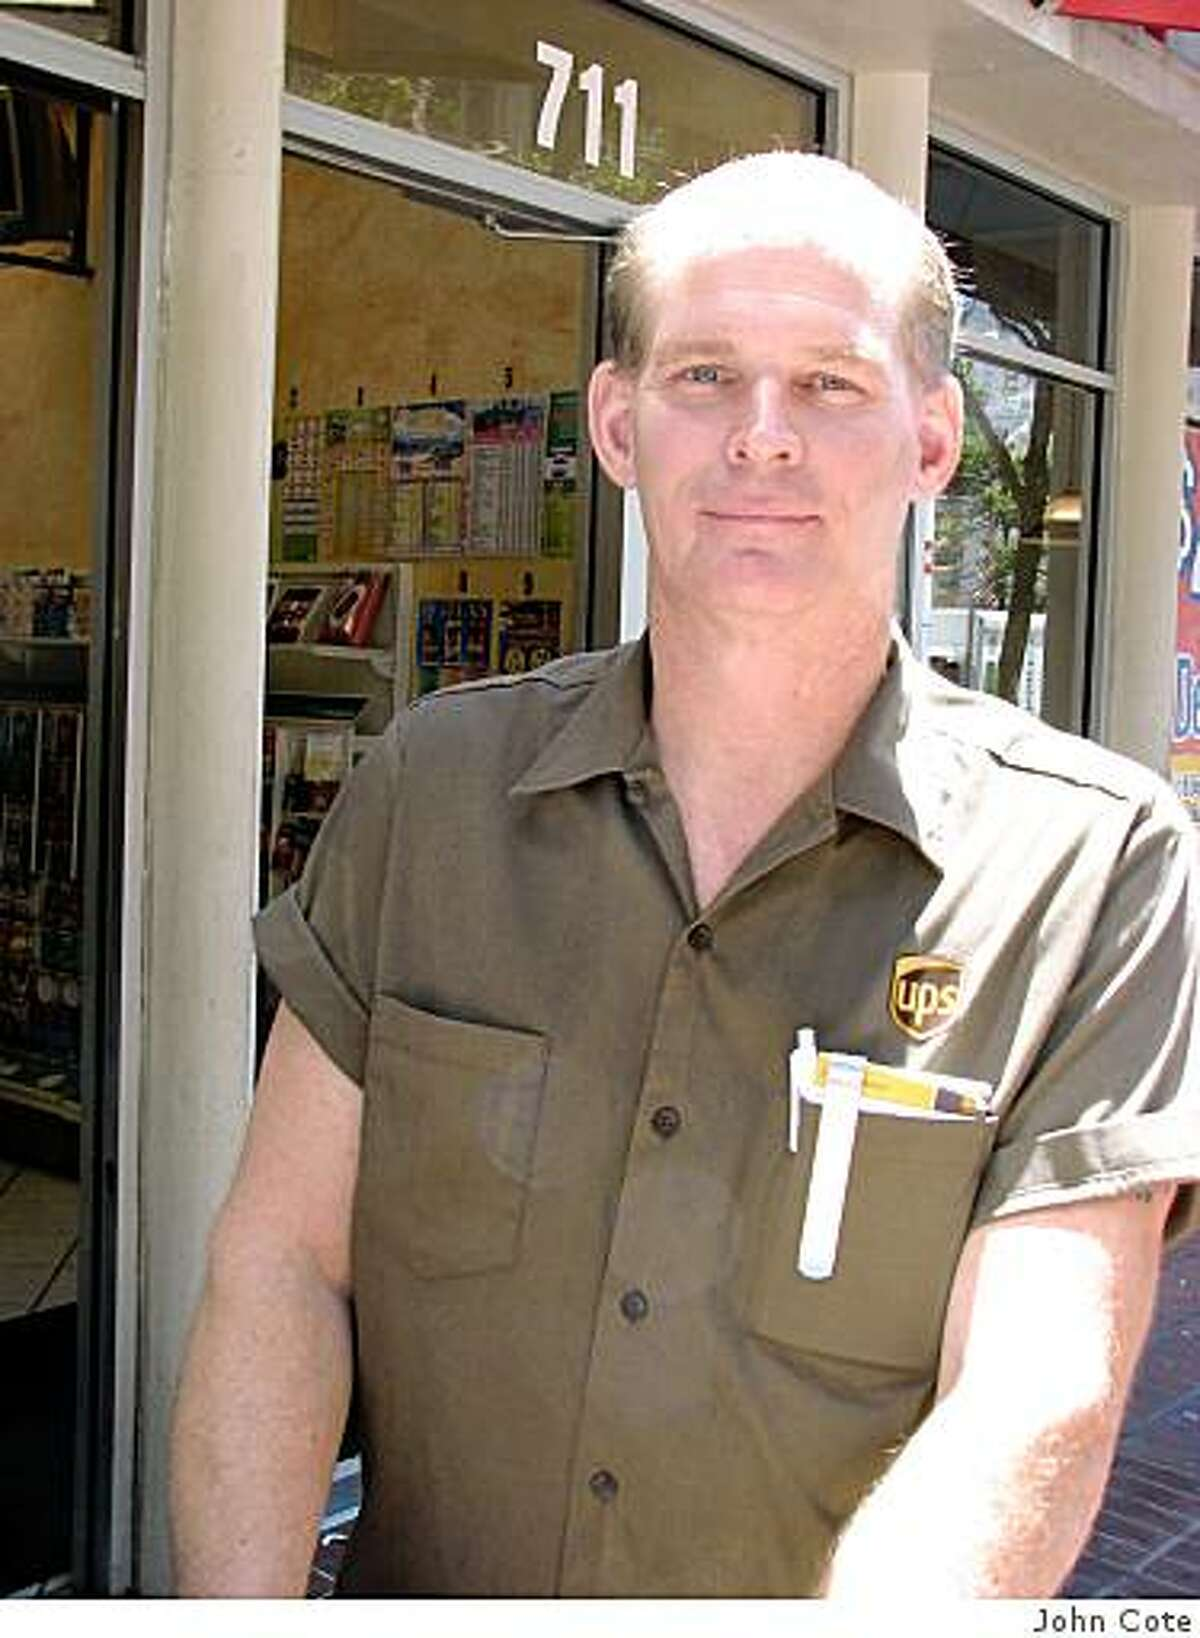 Bill Carlen, 48, of Walnut Creek is a UPS delivery driver who thinks closing a 2-mile stretch of Market Street would be disasterous if it did not include an exception for delivery drivers.